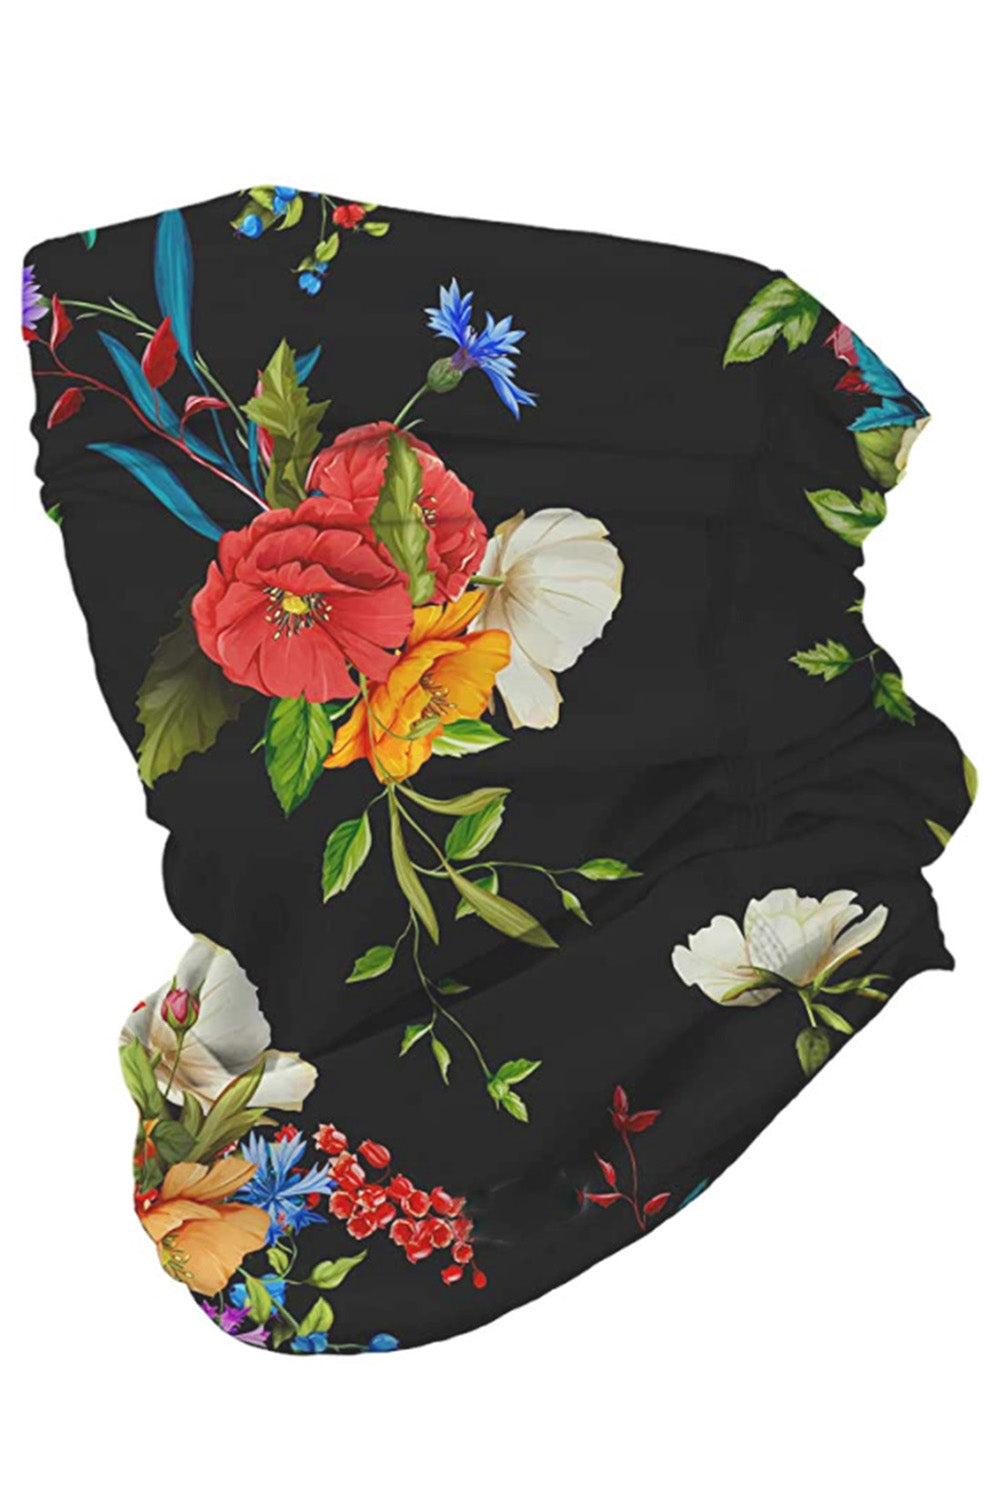 Poppy Floral Multifunctional Headwear Face Mask Headband Neck Gaiter Neck Gaiter Discount Designer Fashion Clothes Shoes Bags Women Men Kids Children Black Owned Business